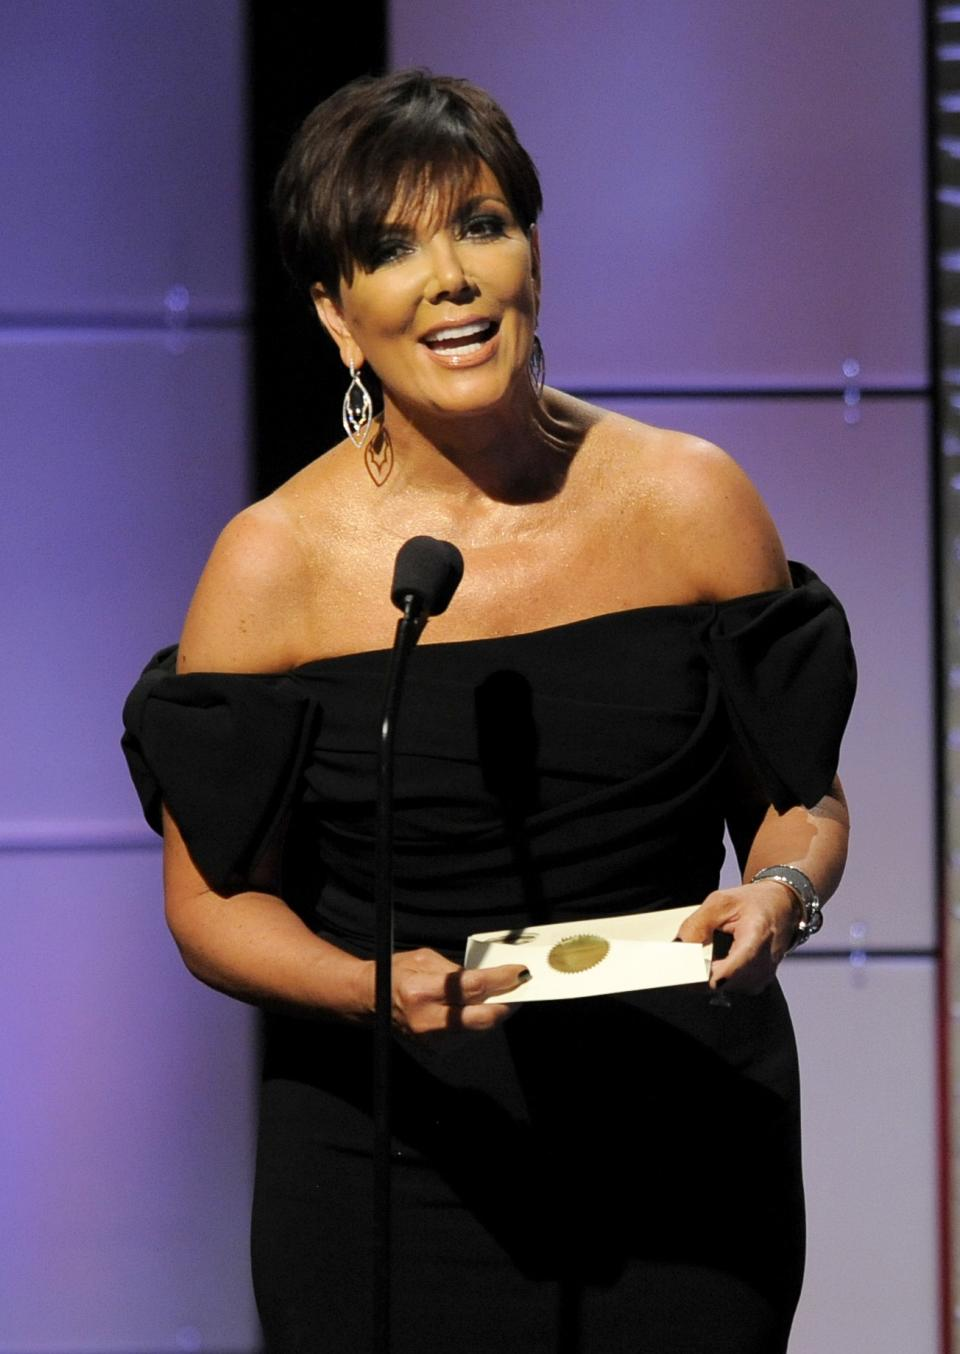 Kris Jenner presents the award for outstanding talk show host at the 40th Annual Daytime Emmy Awards on Sunday, June 16, 2013, in Beverly Hills, Calif. (Photo by Chris Pizzello/Invision/AP)